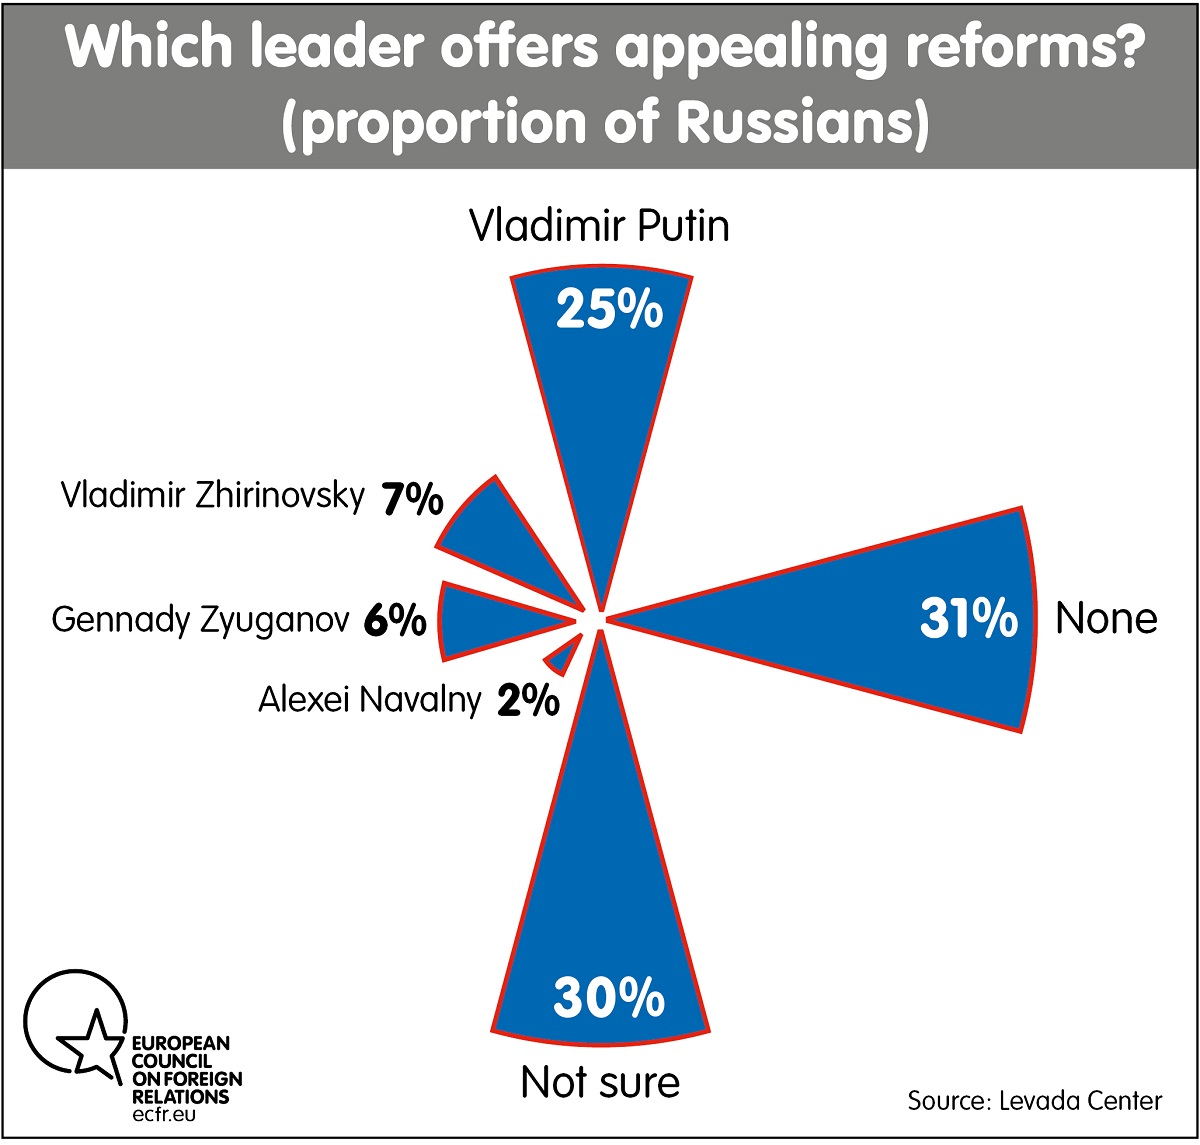 Which leaders offer reforms?